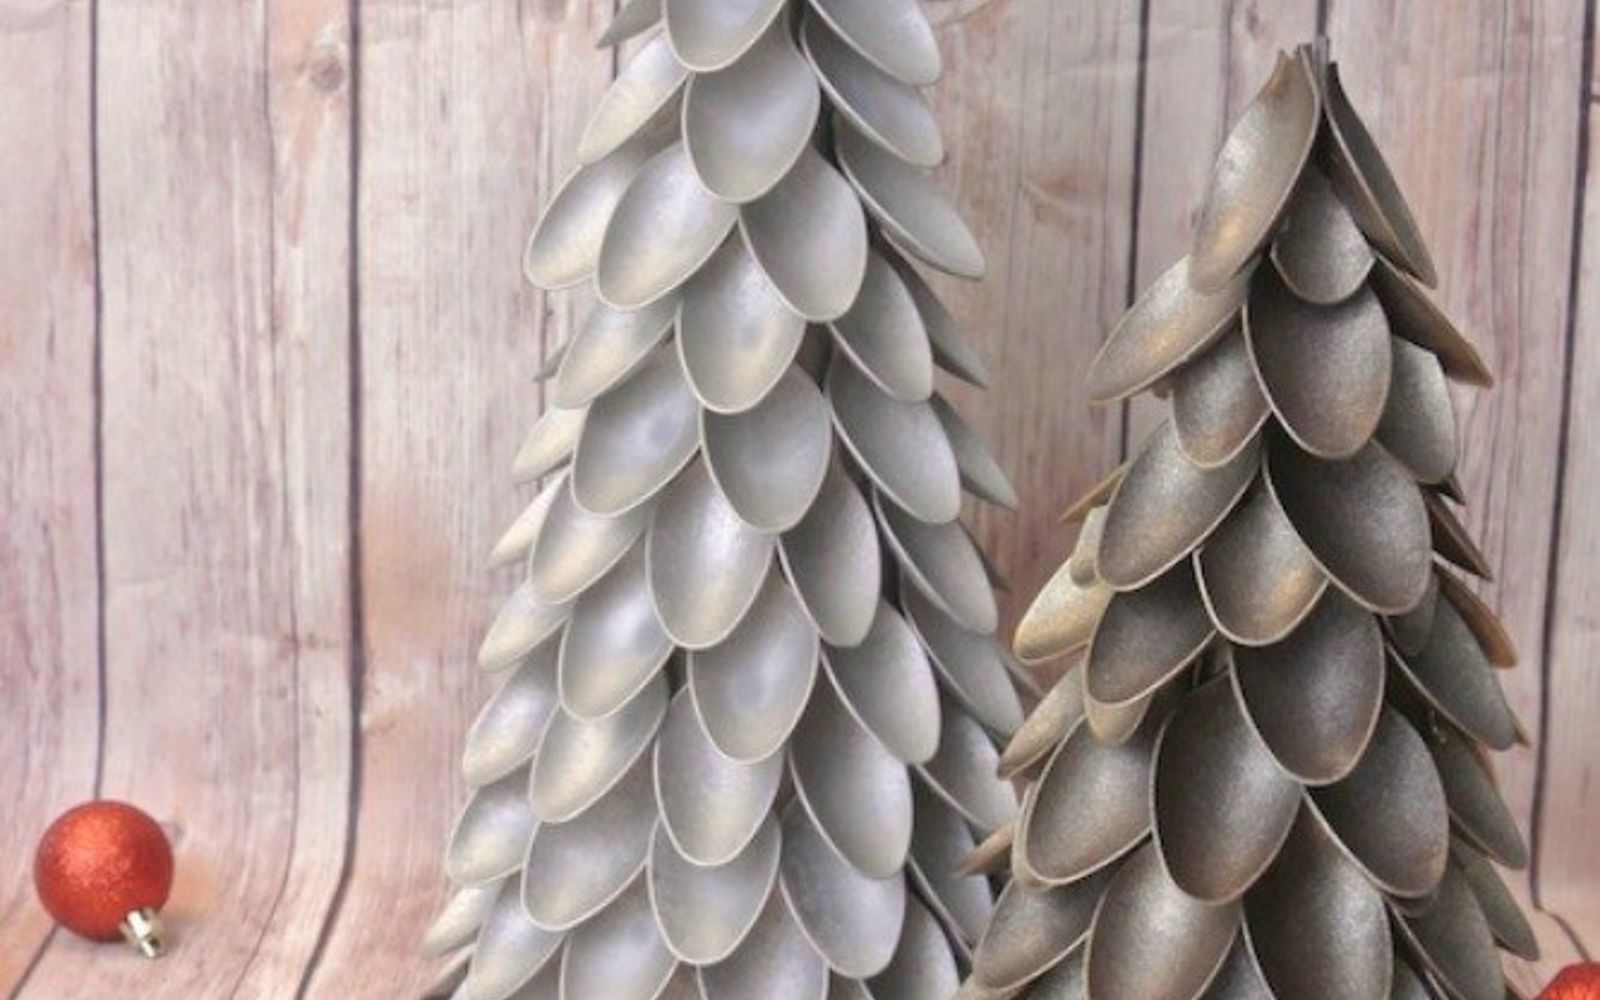 s 11 brilliant ways to reuse plastic spoons, Turn them into Christmas trees